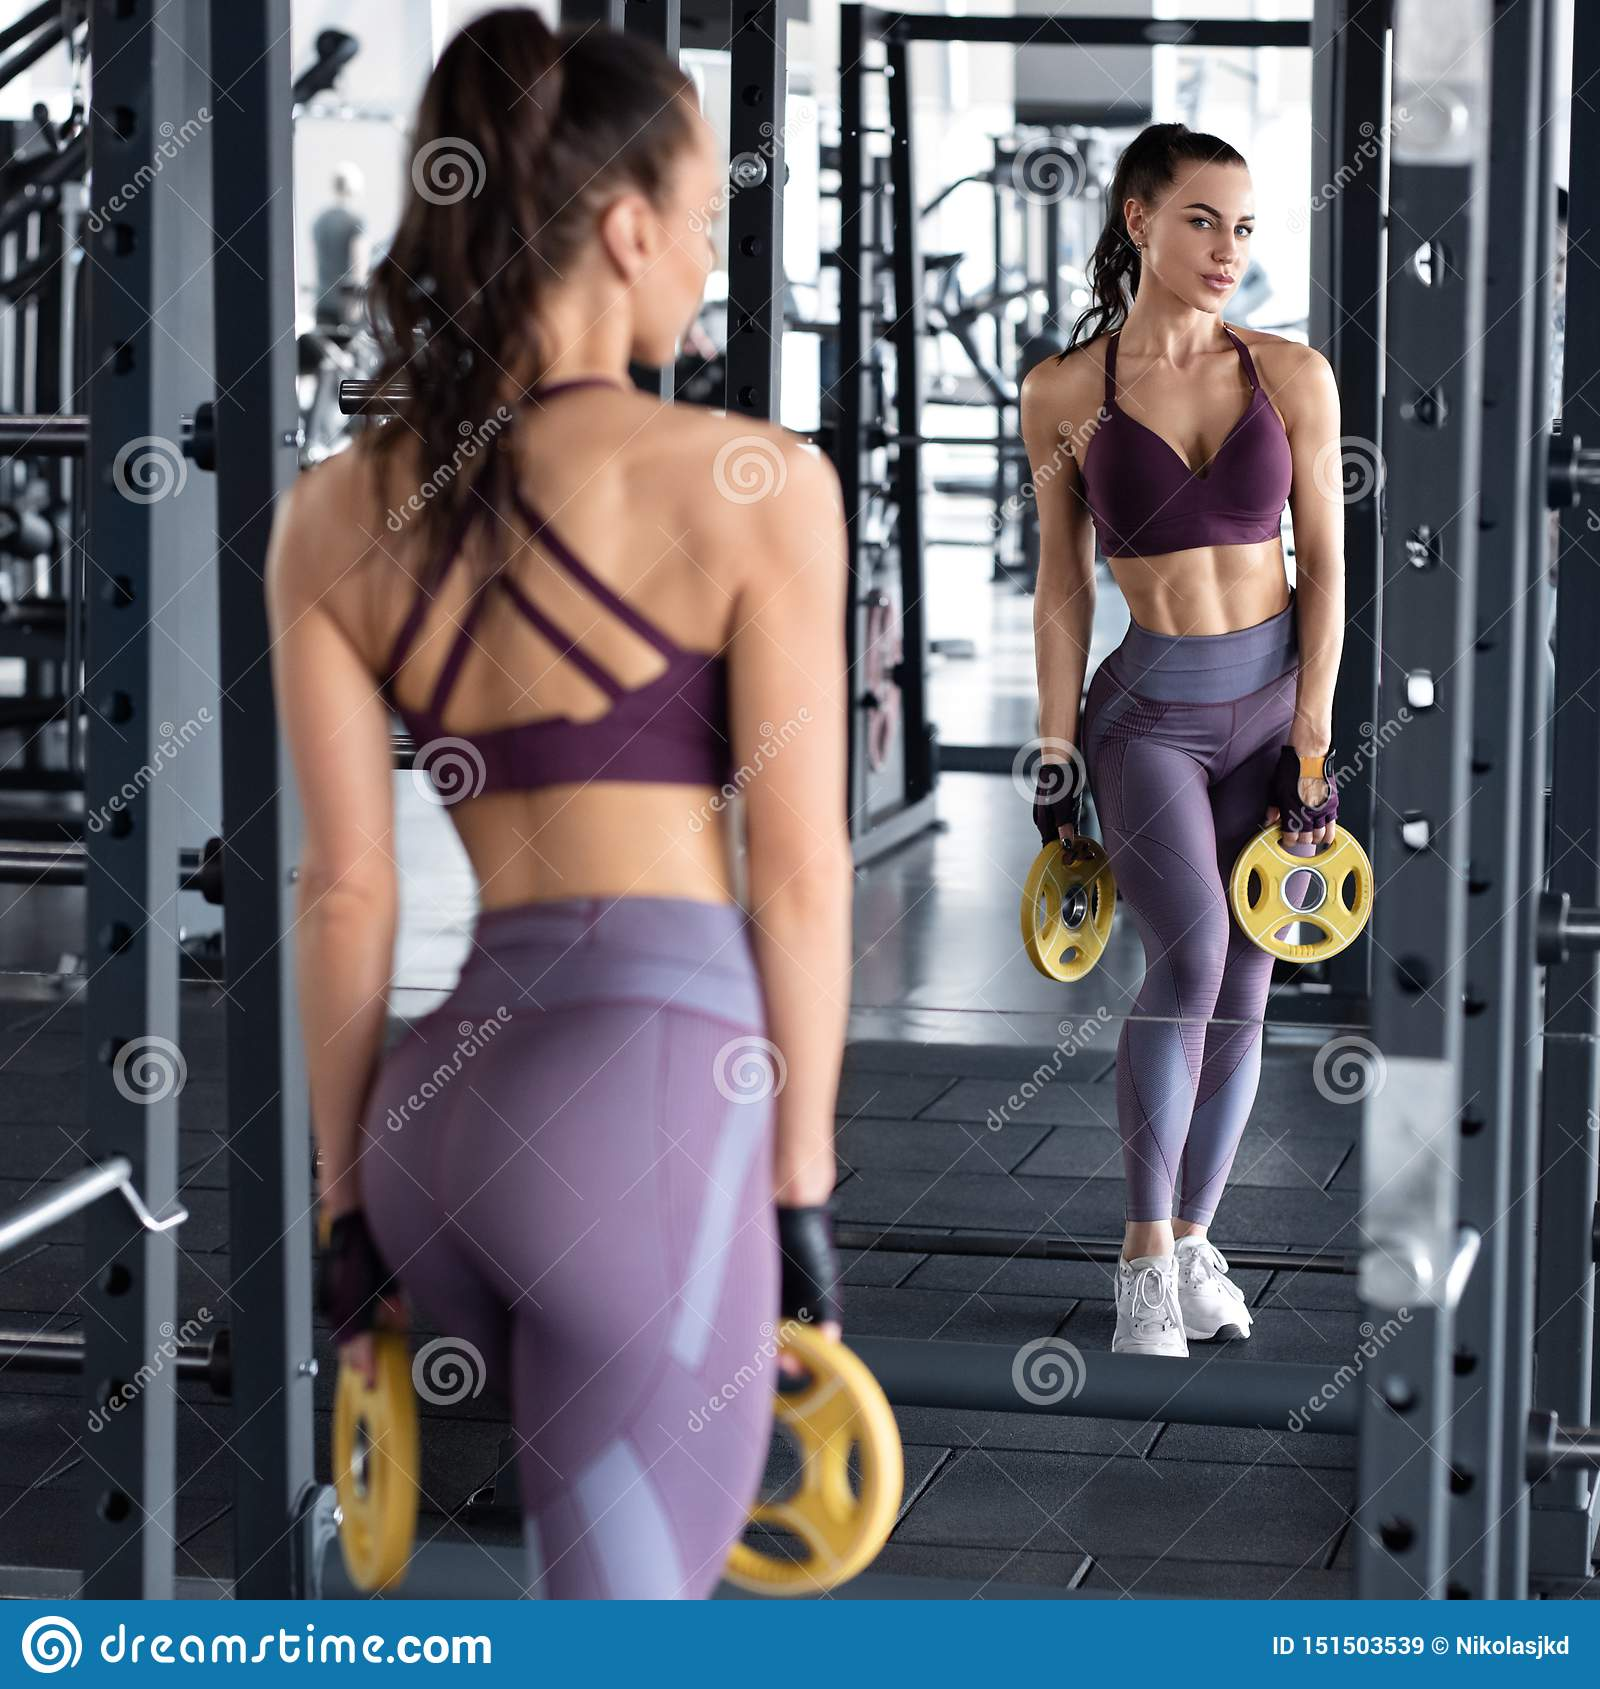 Fitness Woman Workout In Gym Slim Waist Athletic Girl Doing Exercise Beautiful In Leggings Stock Image Image Of Girl Leggings 151503539